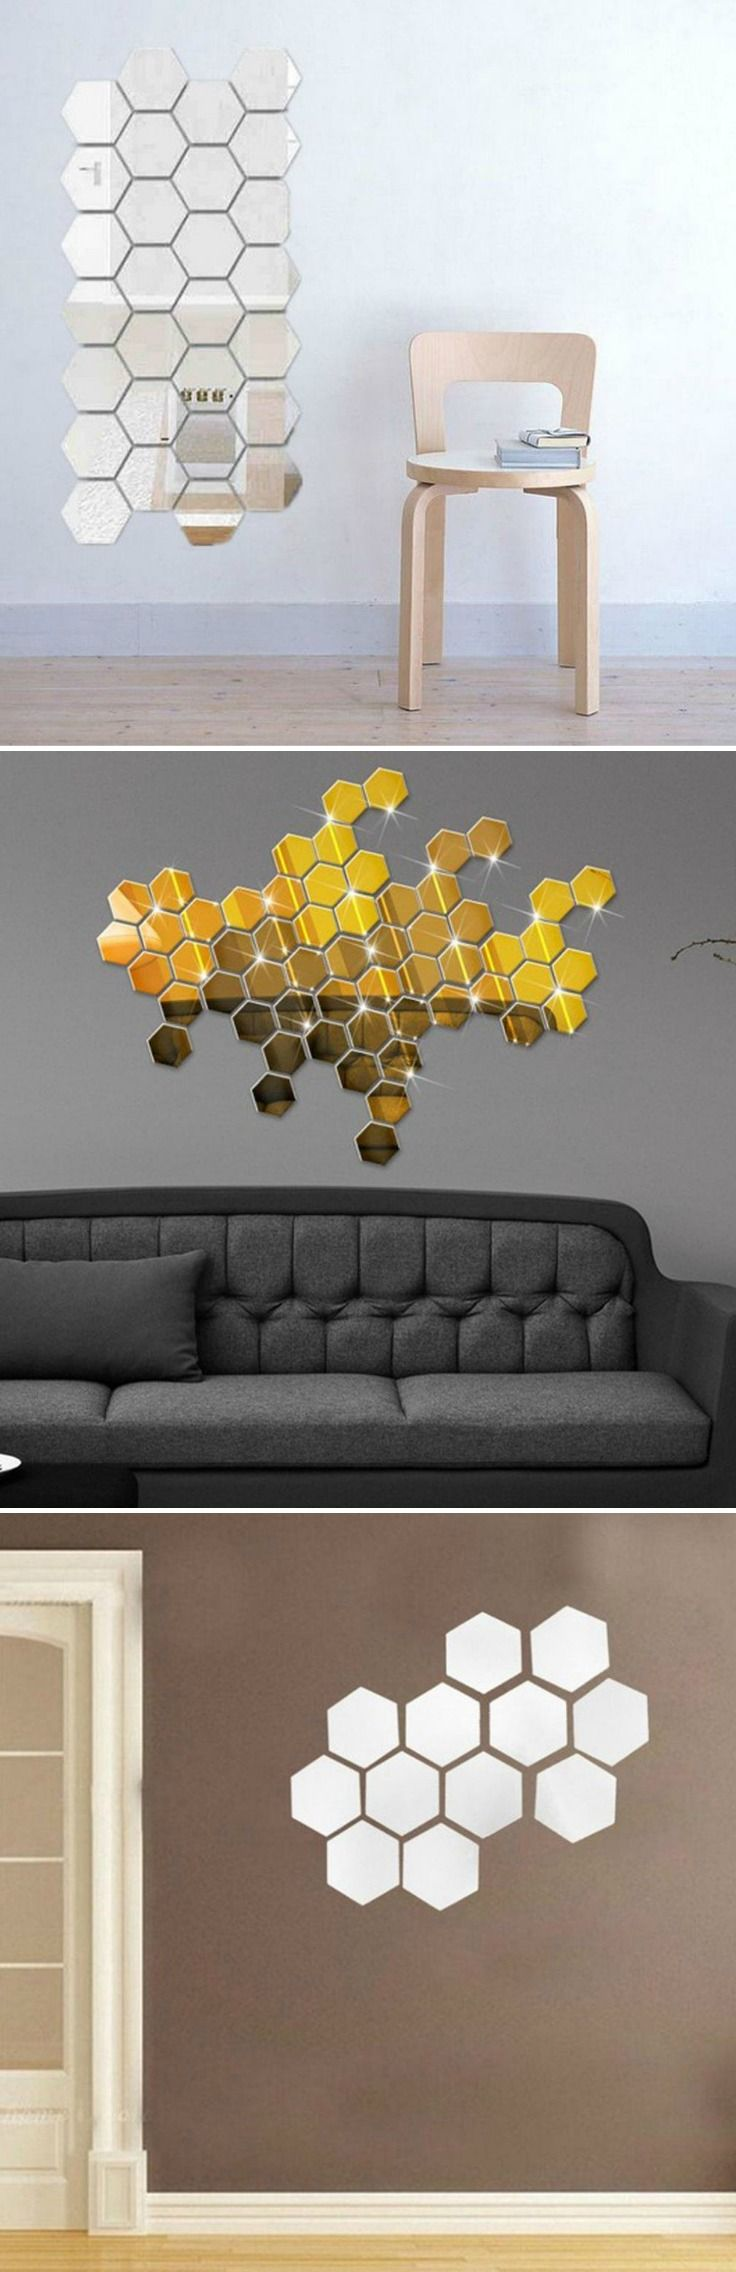 Mirror Hexagon Vinyl Removable Wall Stickers In Golf Silver These Would Make College Dorm